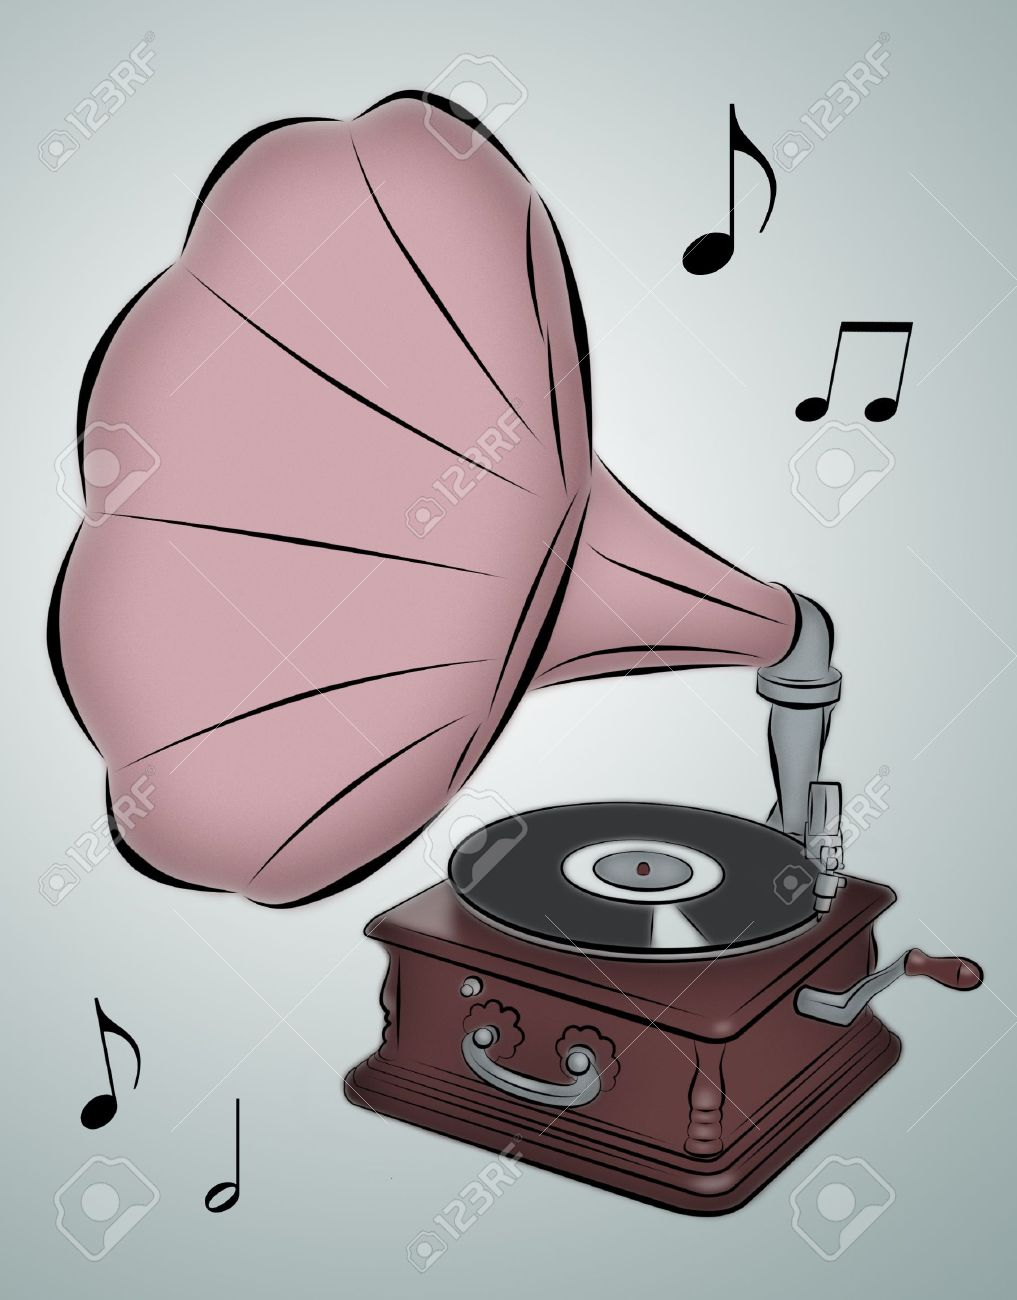 Line drawing of phonograph with musical notes. - 8066101